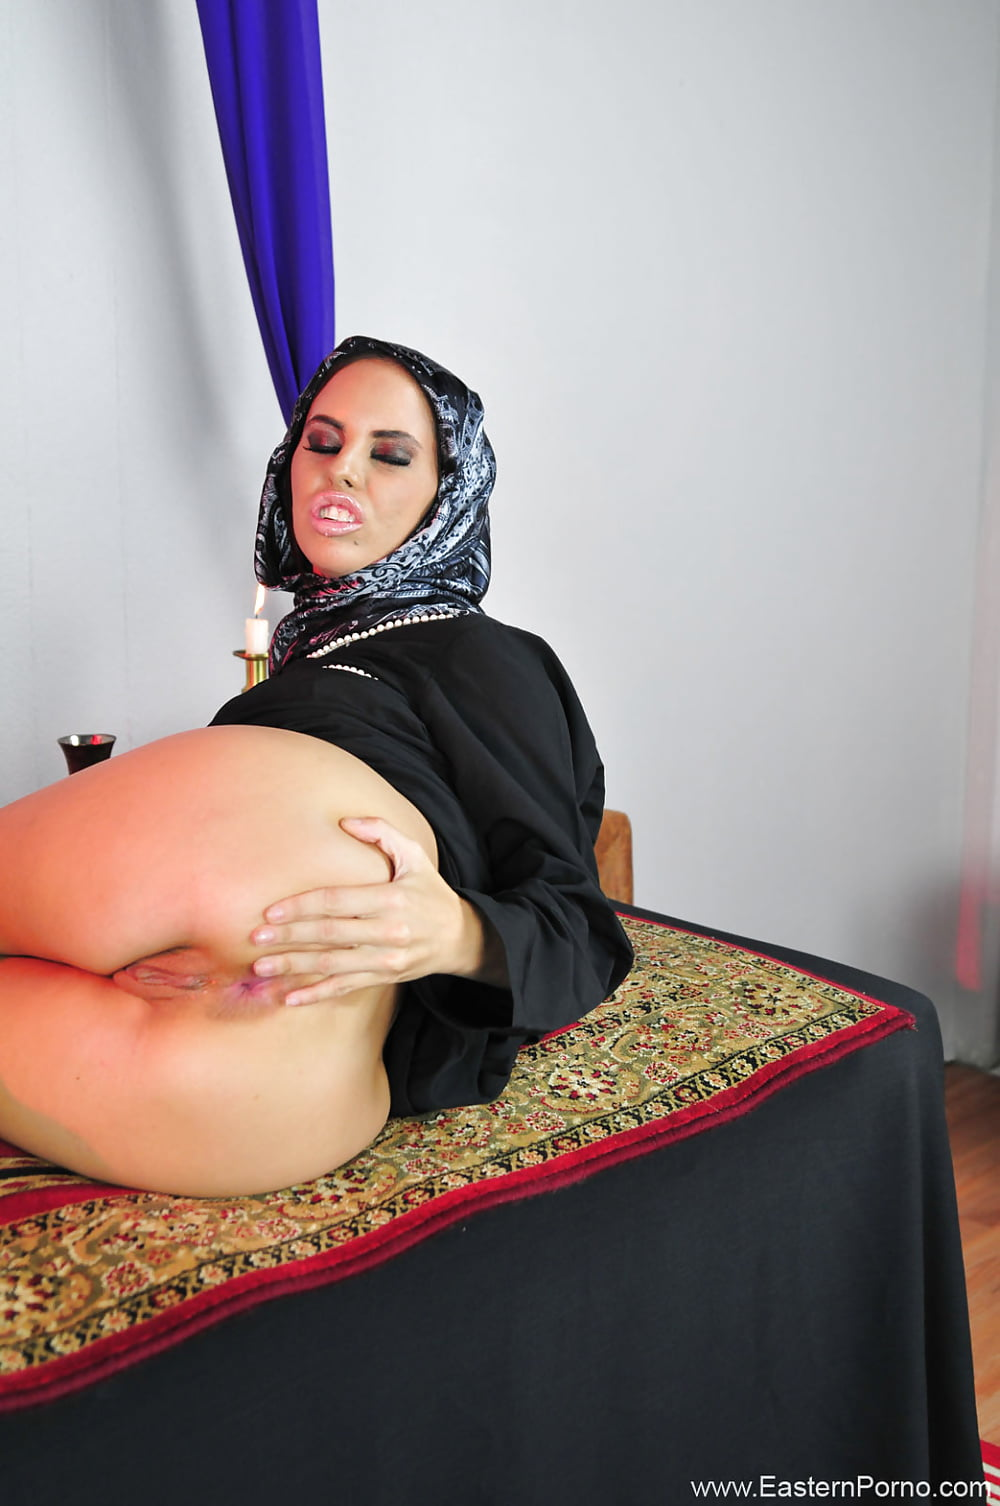 pics-of-naked-muslim-girls-naked-abby